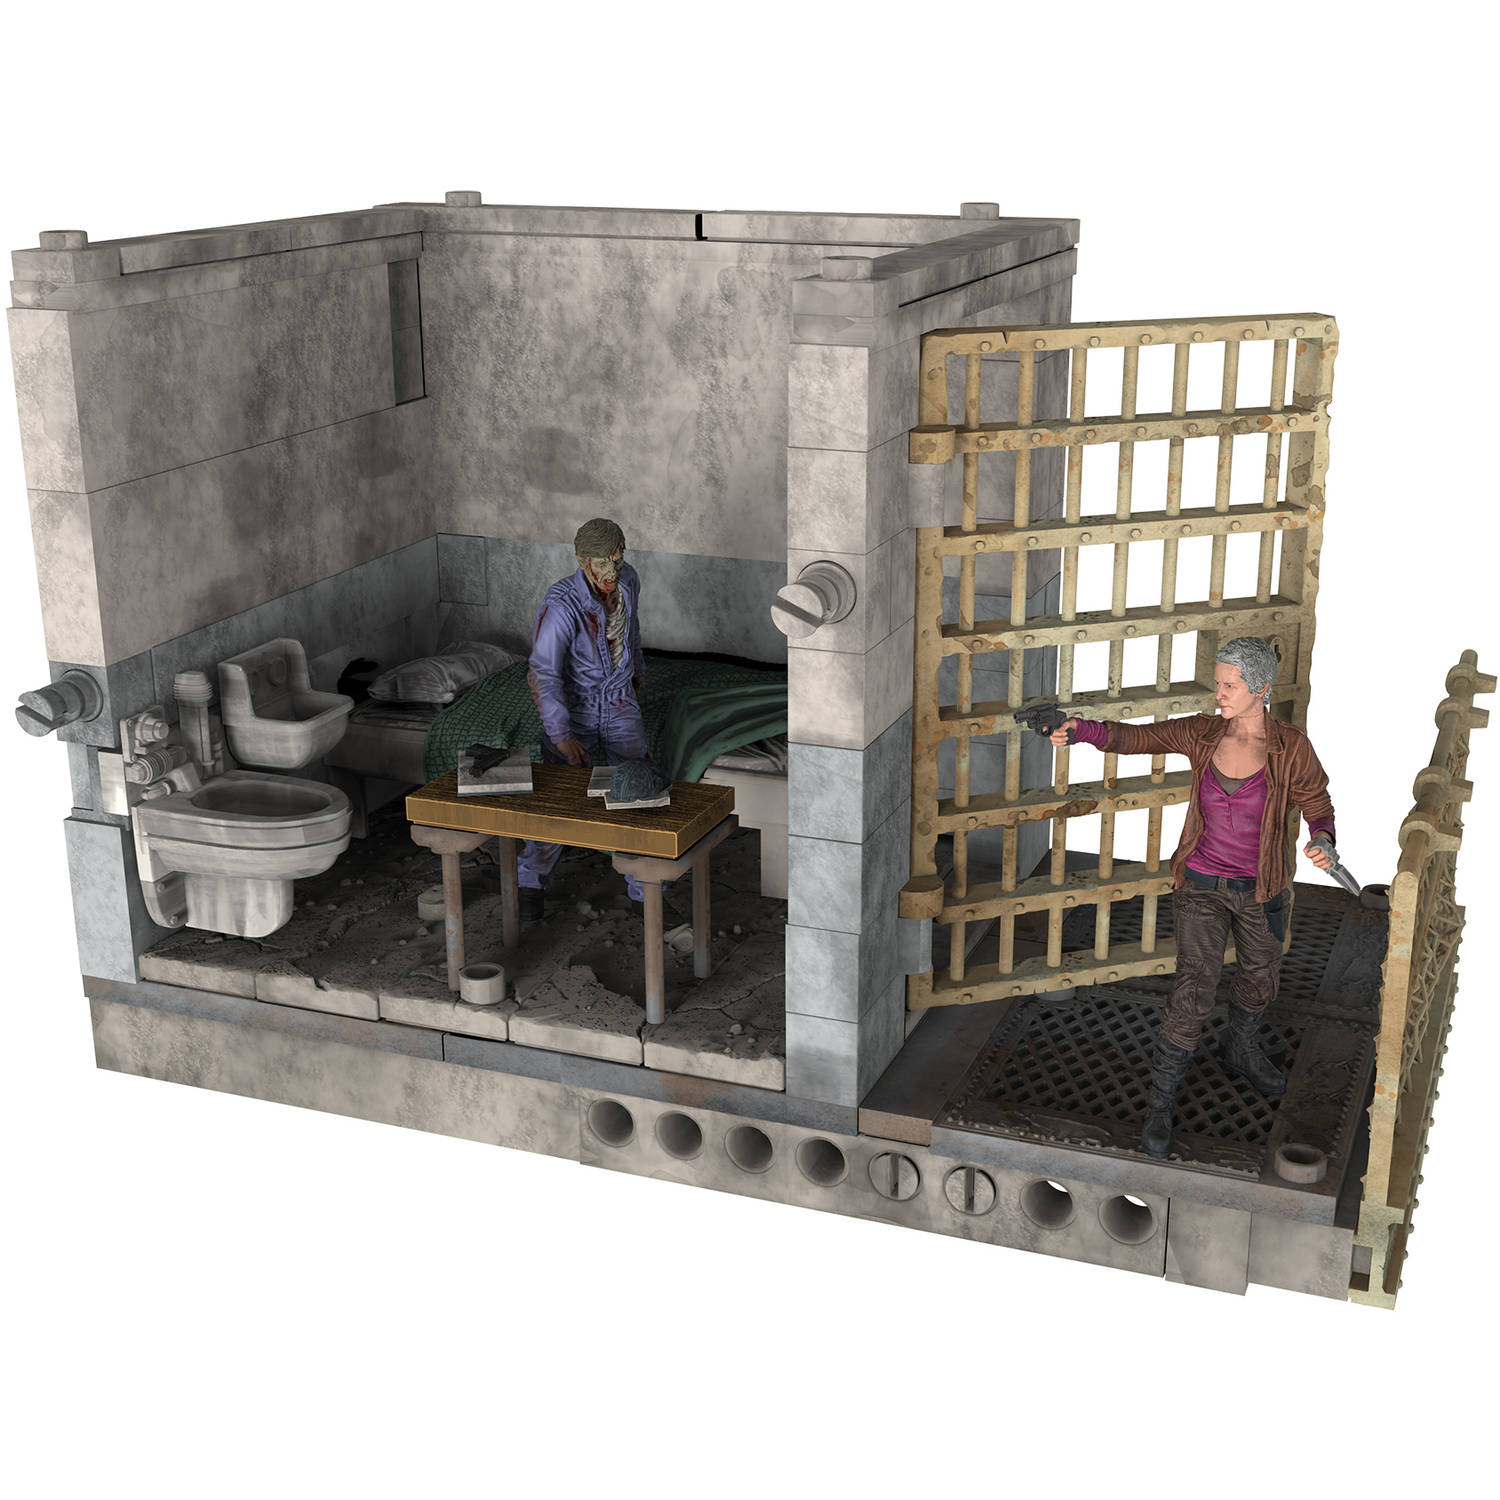 McFarlane Toys The Walking Dead Upper Prison Cell Construction Set